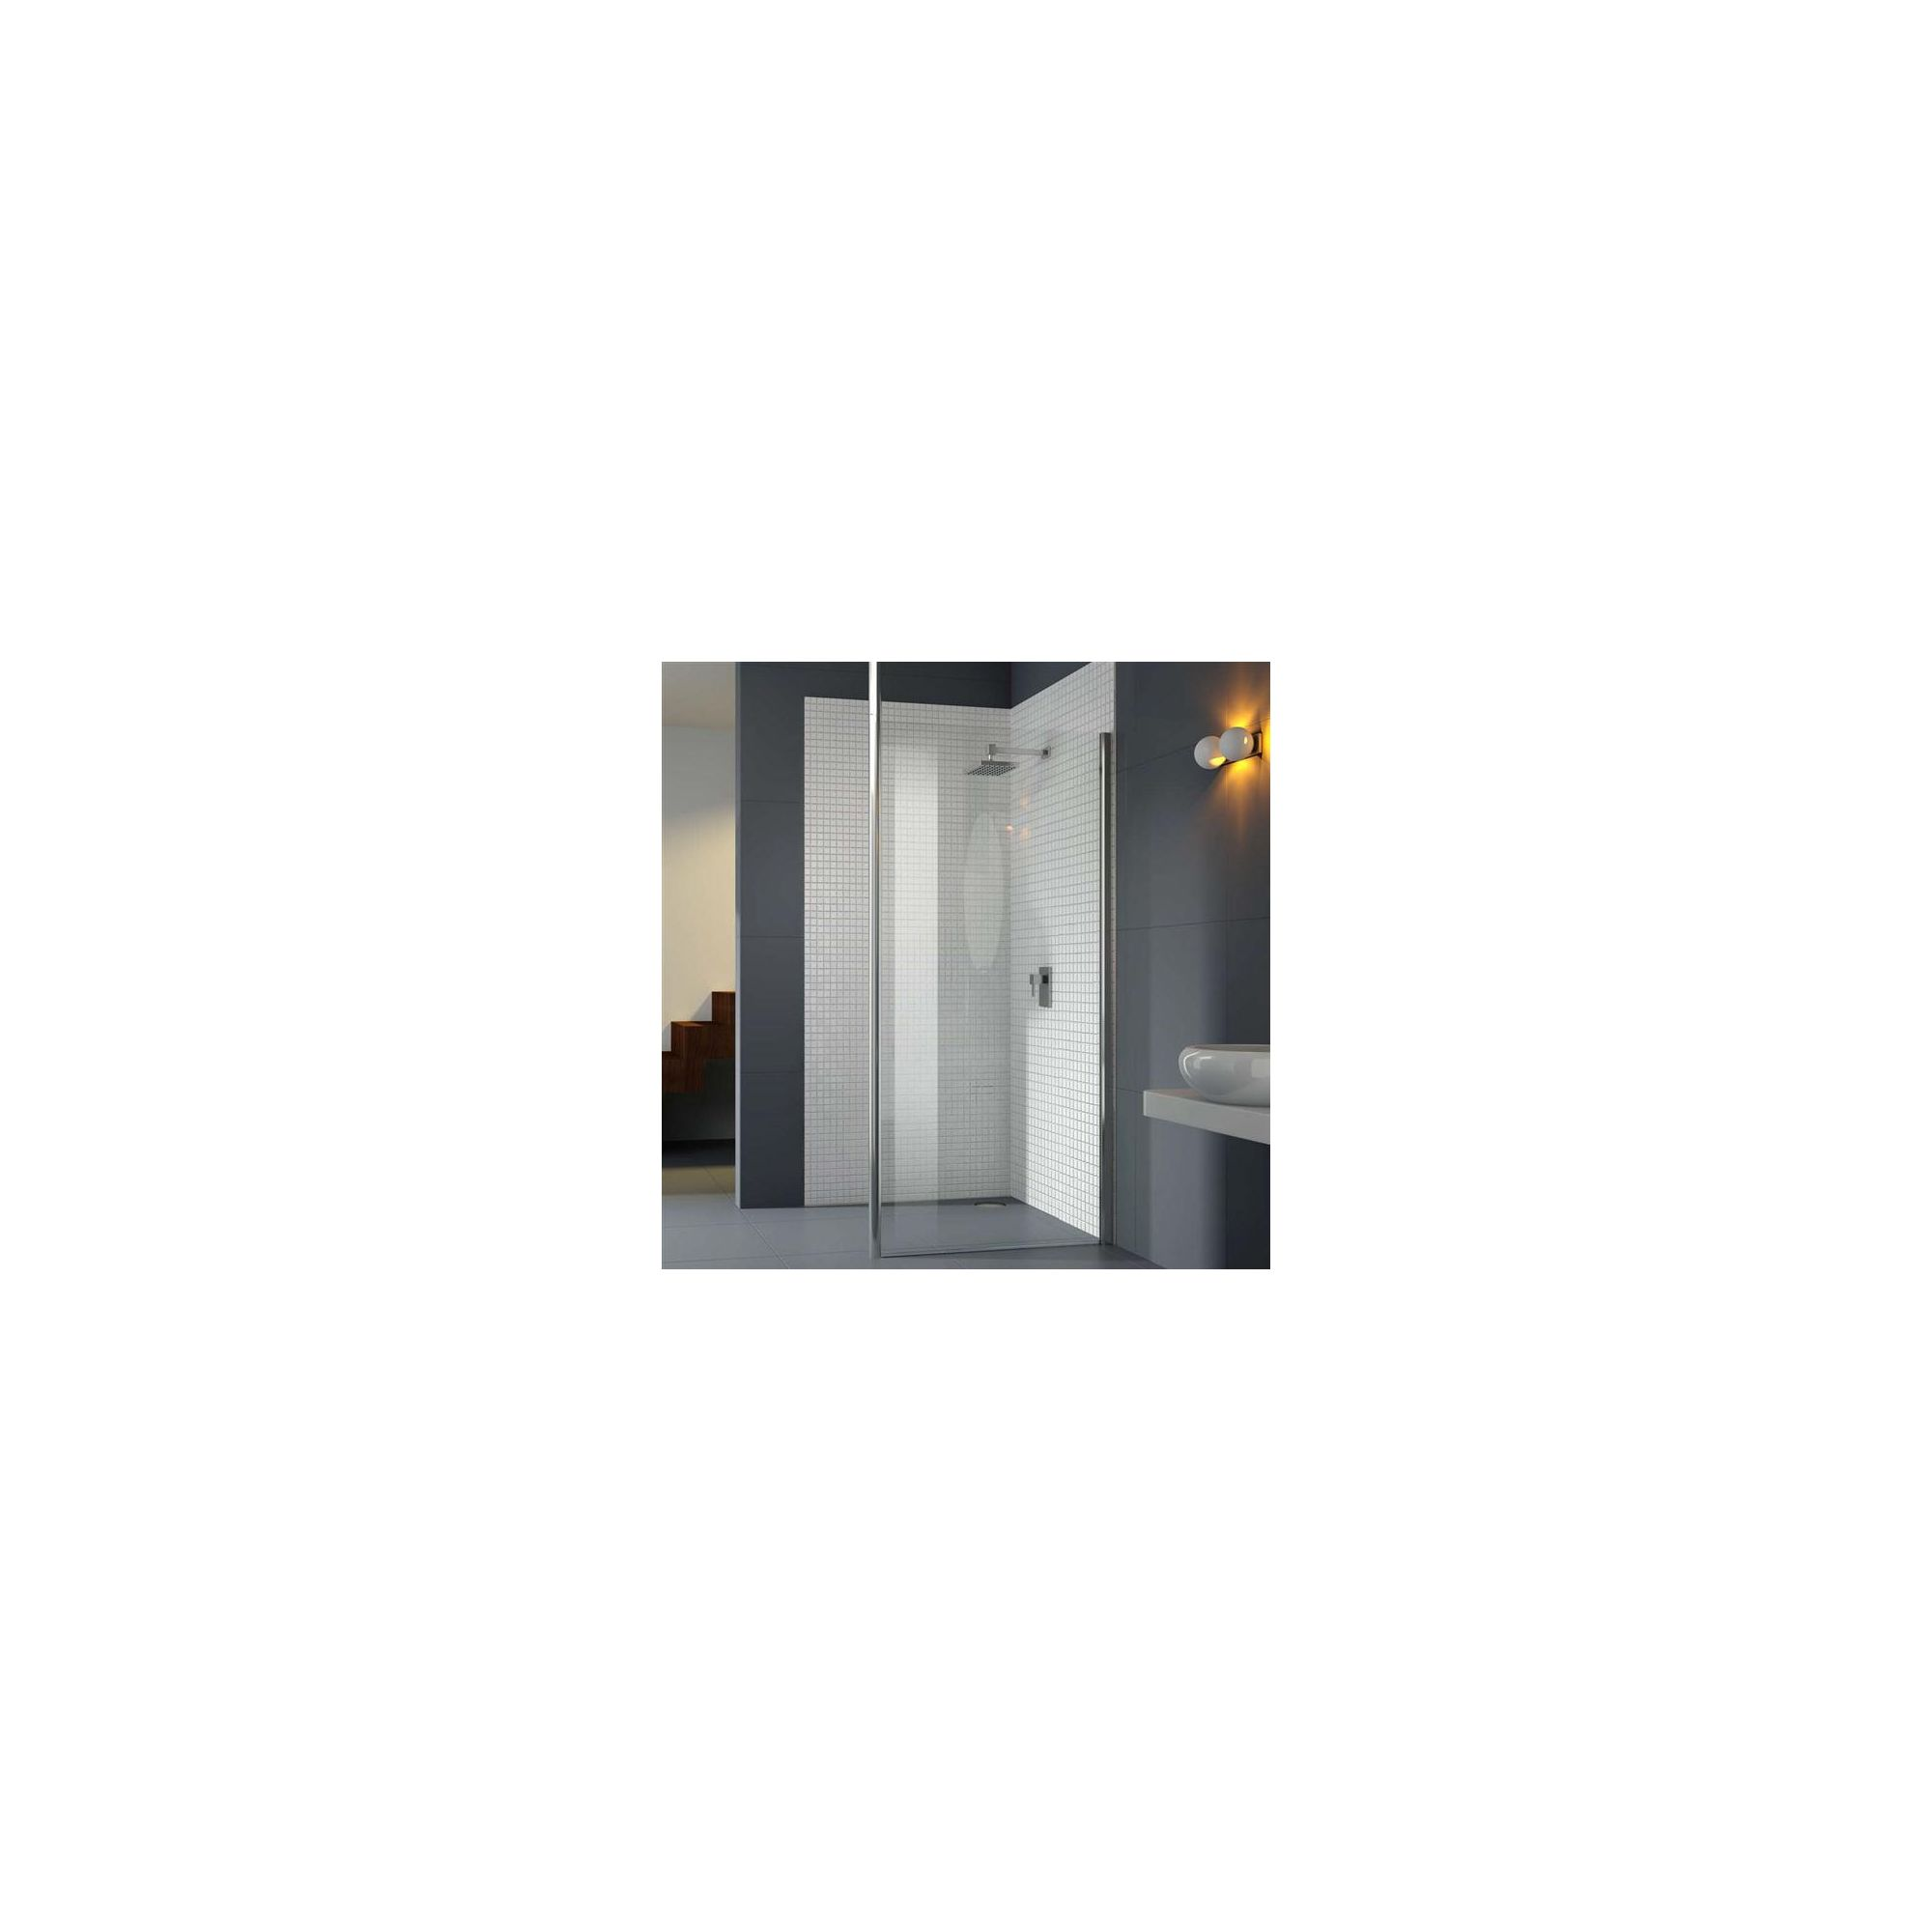 Merlyn Vivid Six Wet Room Shower Glass Panel 1200mm Wide with Vertical Support Bar at Tesco Direct